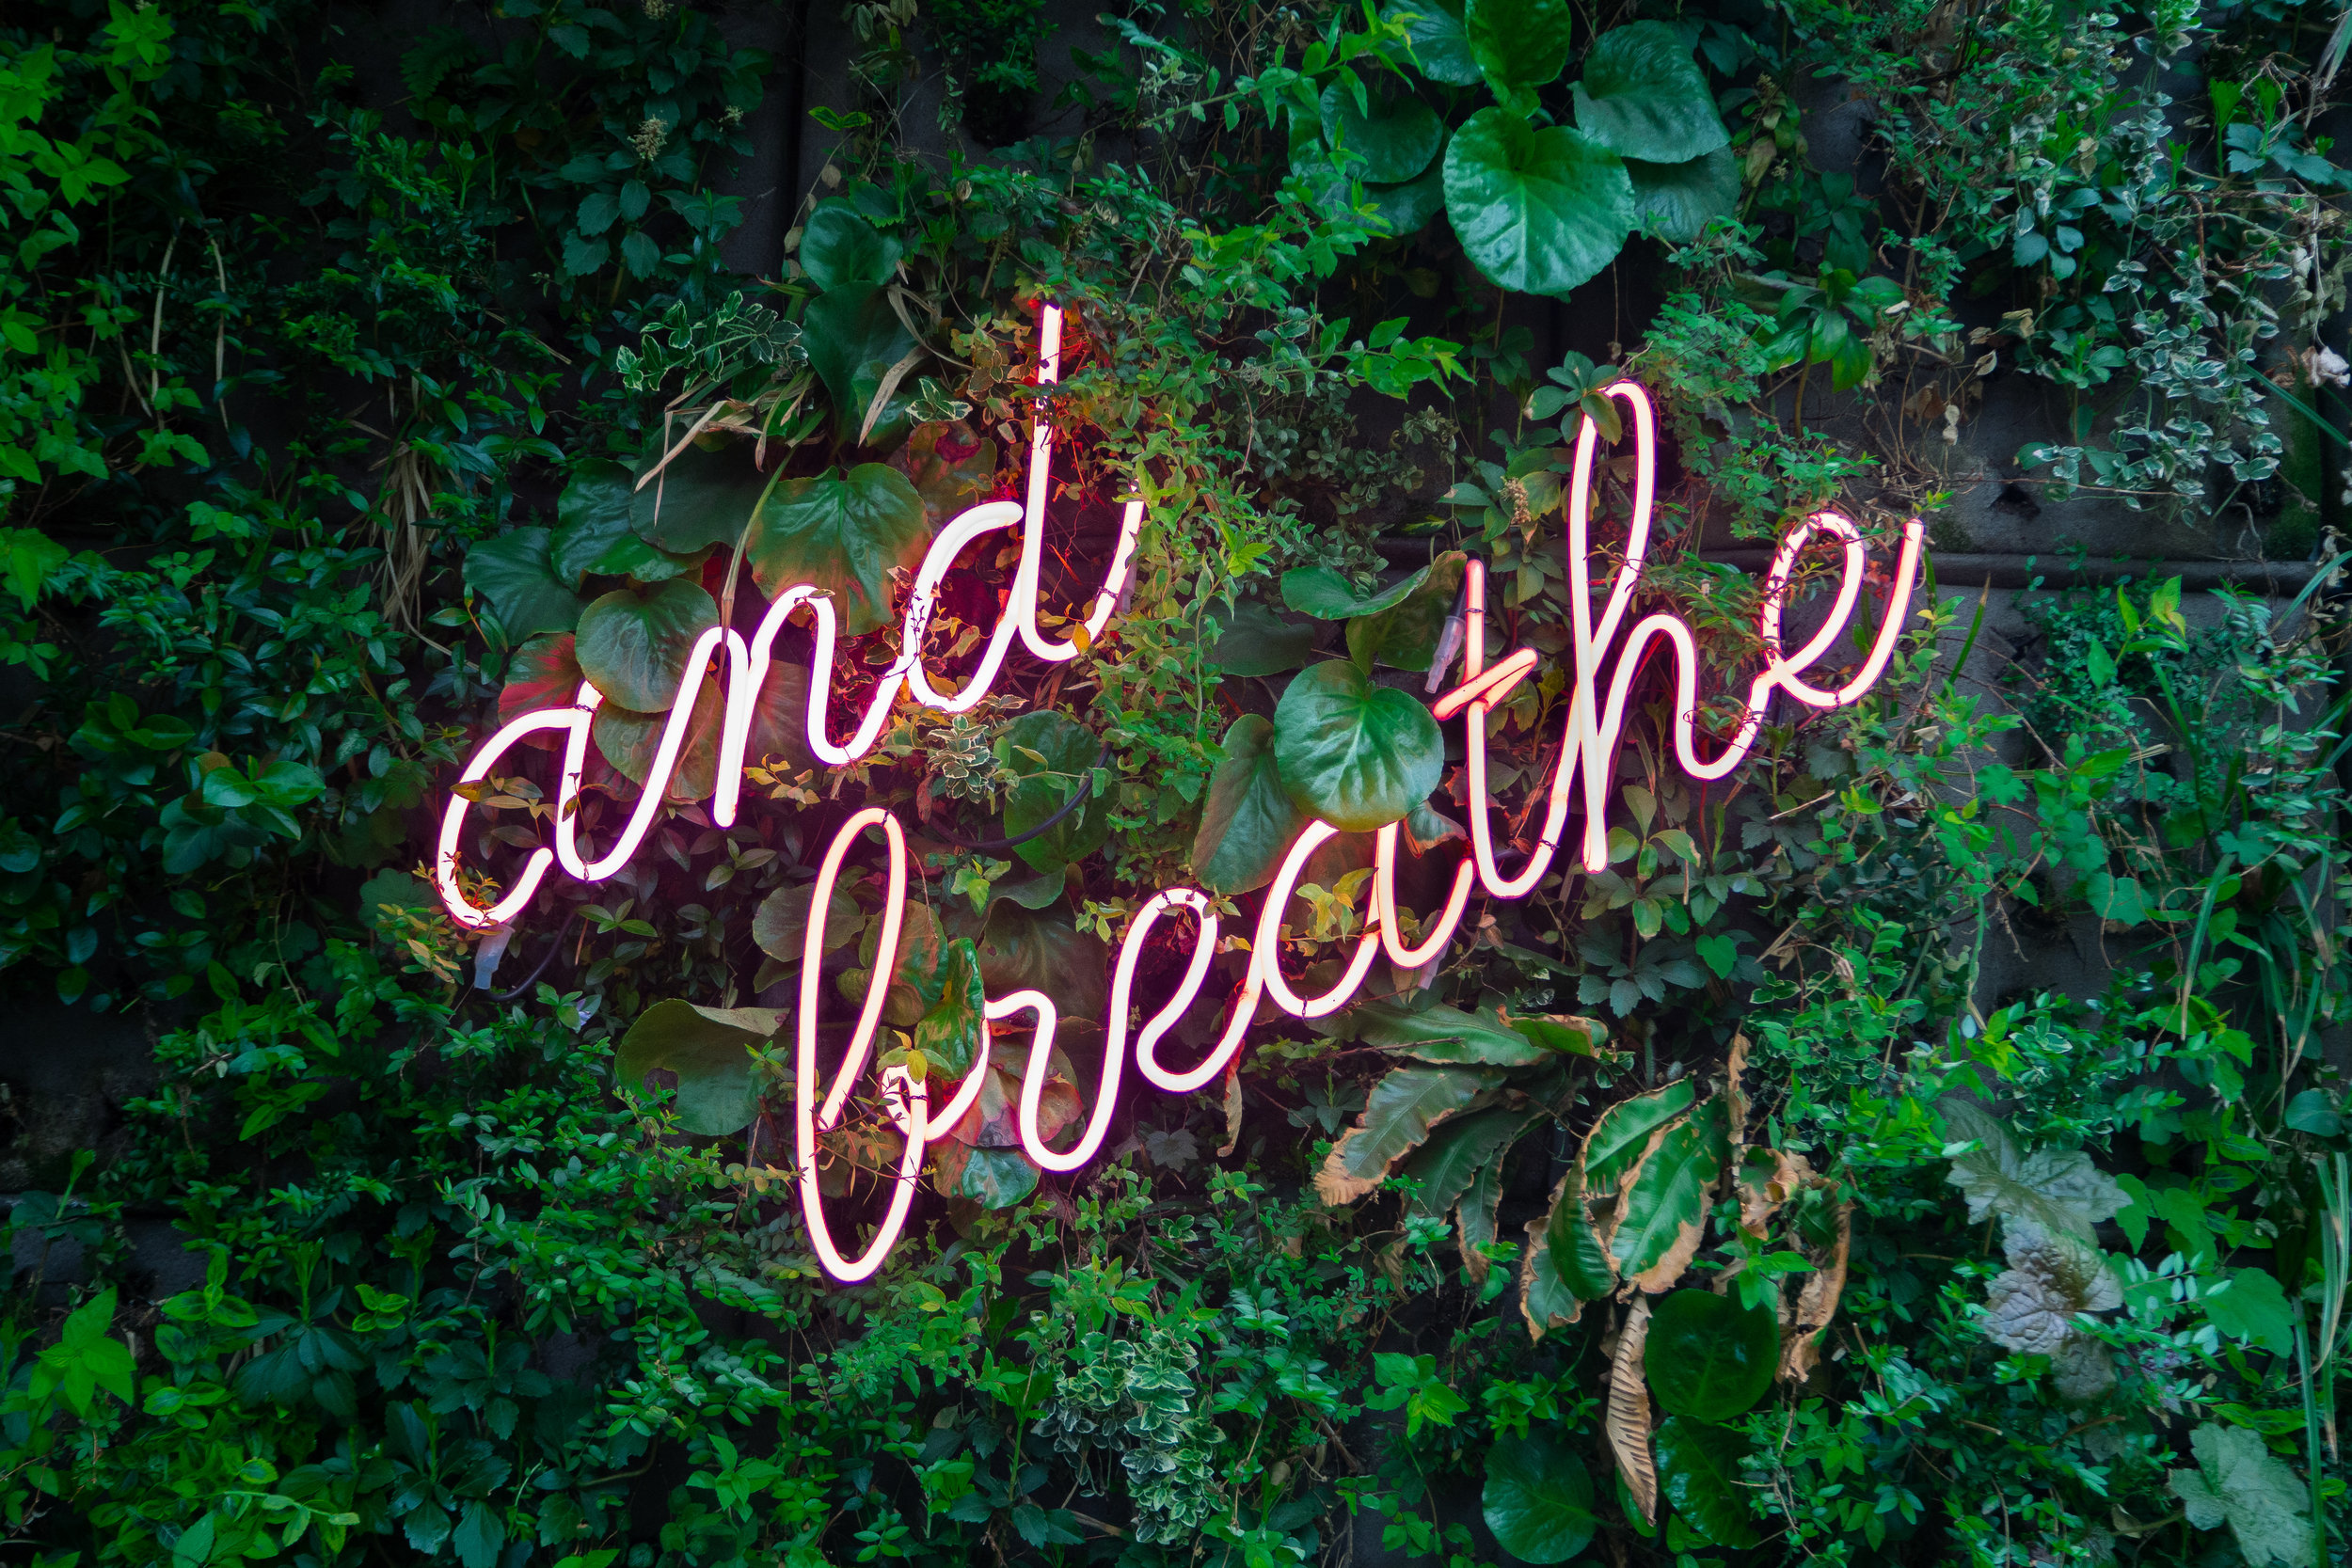 6. Keep all the stress away - Finding an effective way to regulate personal stress may go a long way toward better overall health.